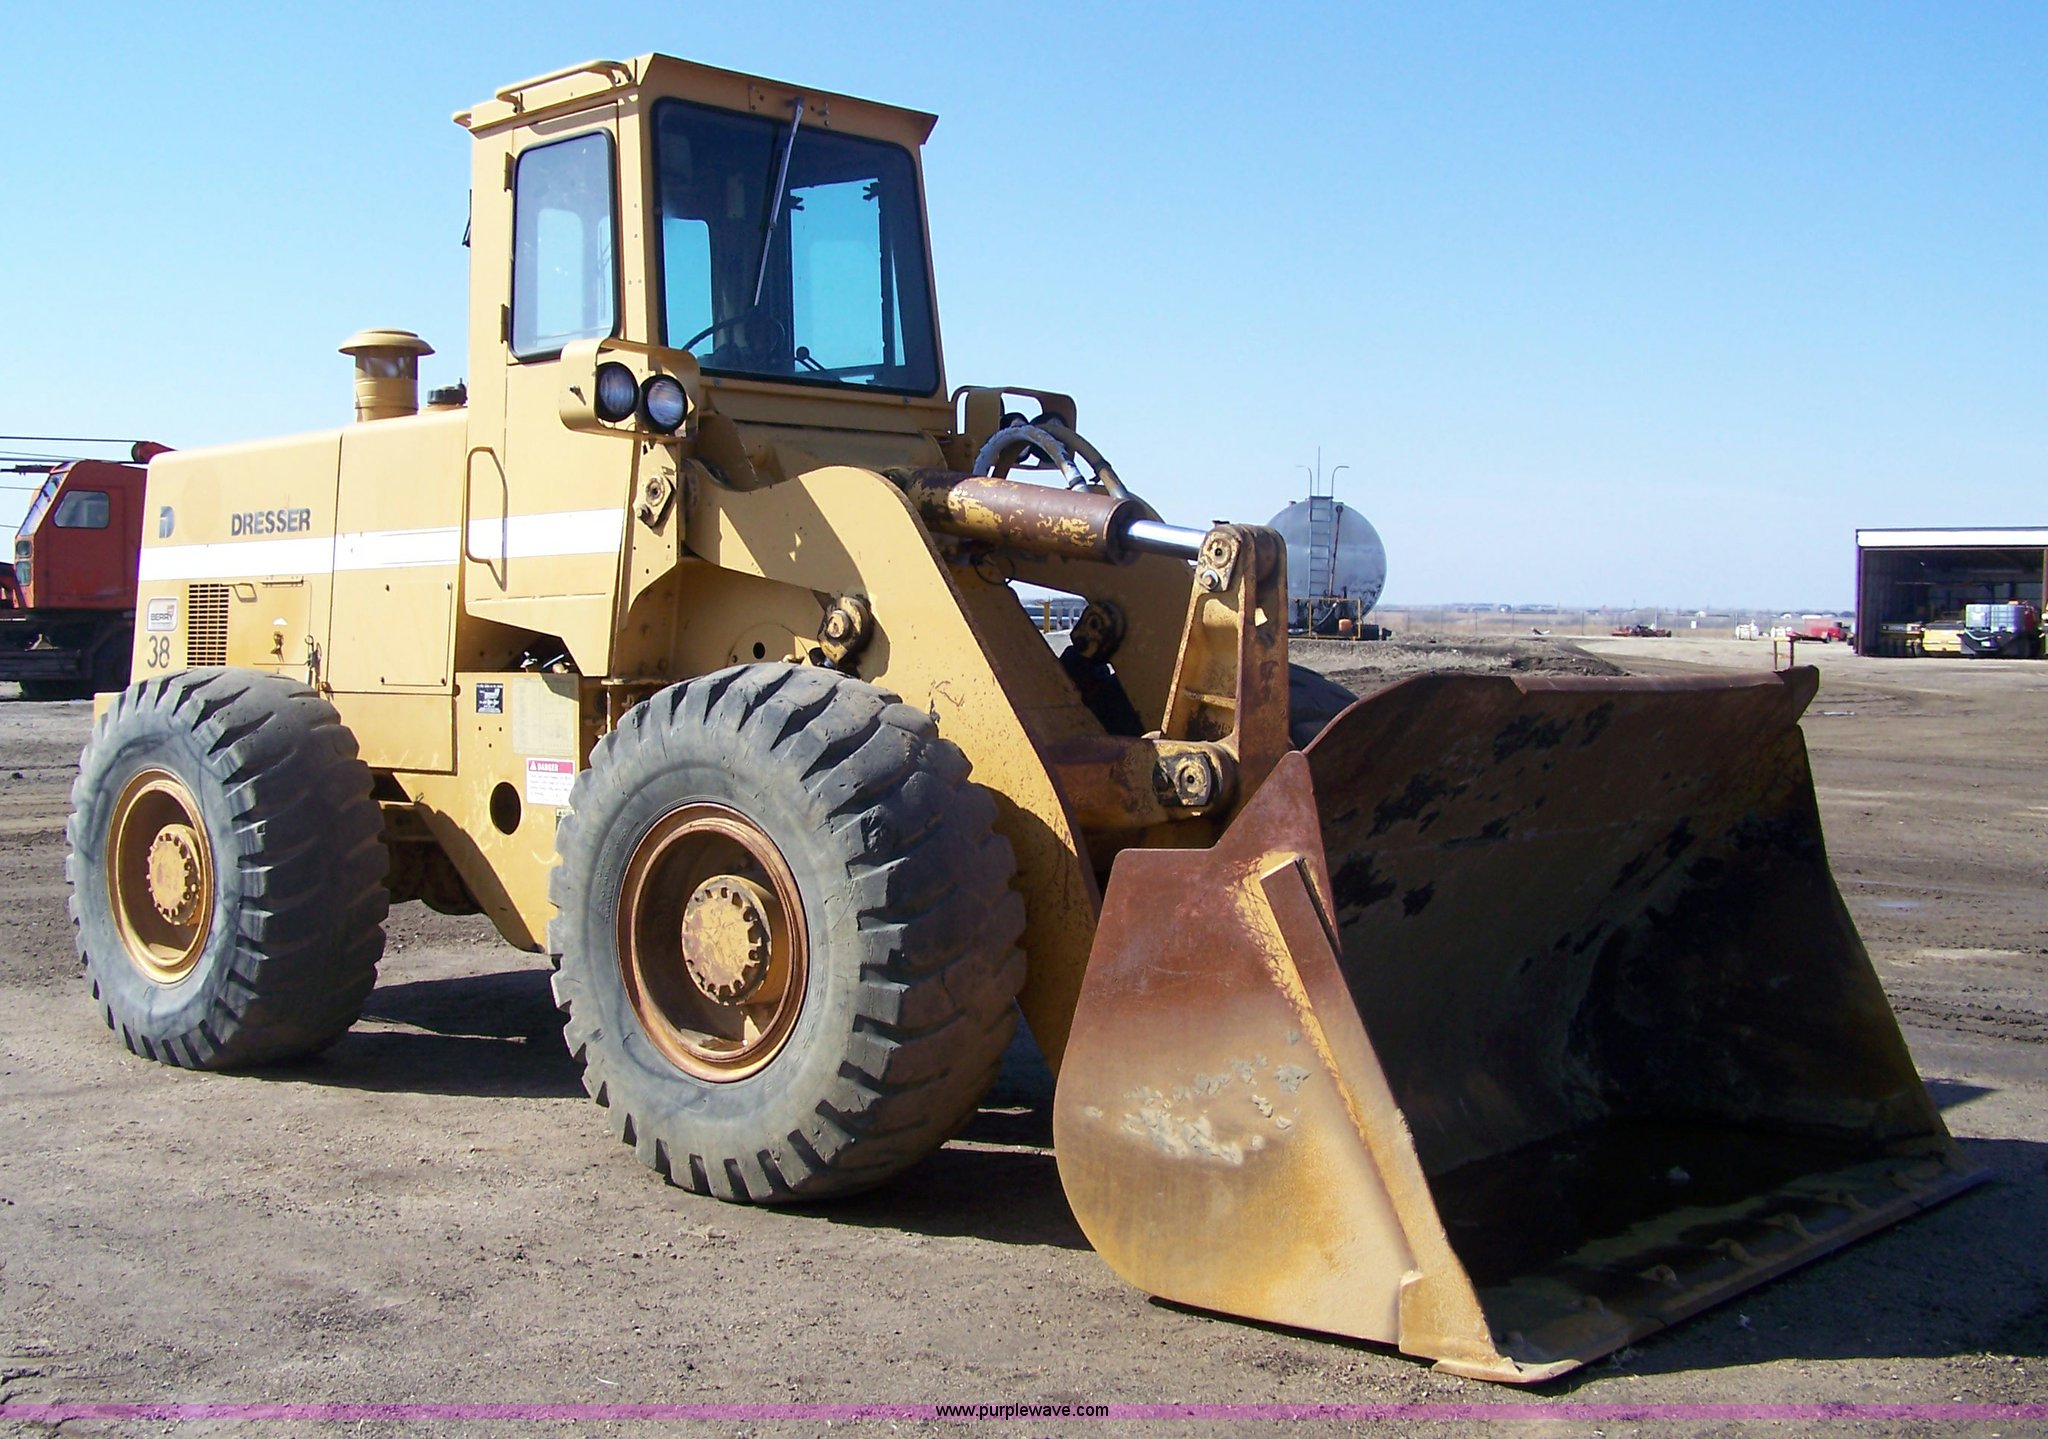 ... Dresser 530 wheel loader Full size in new window ...